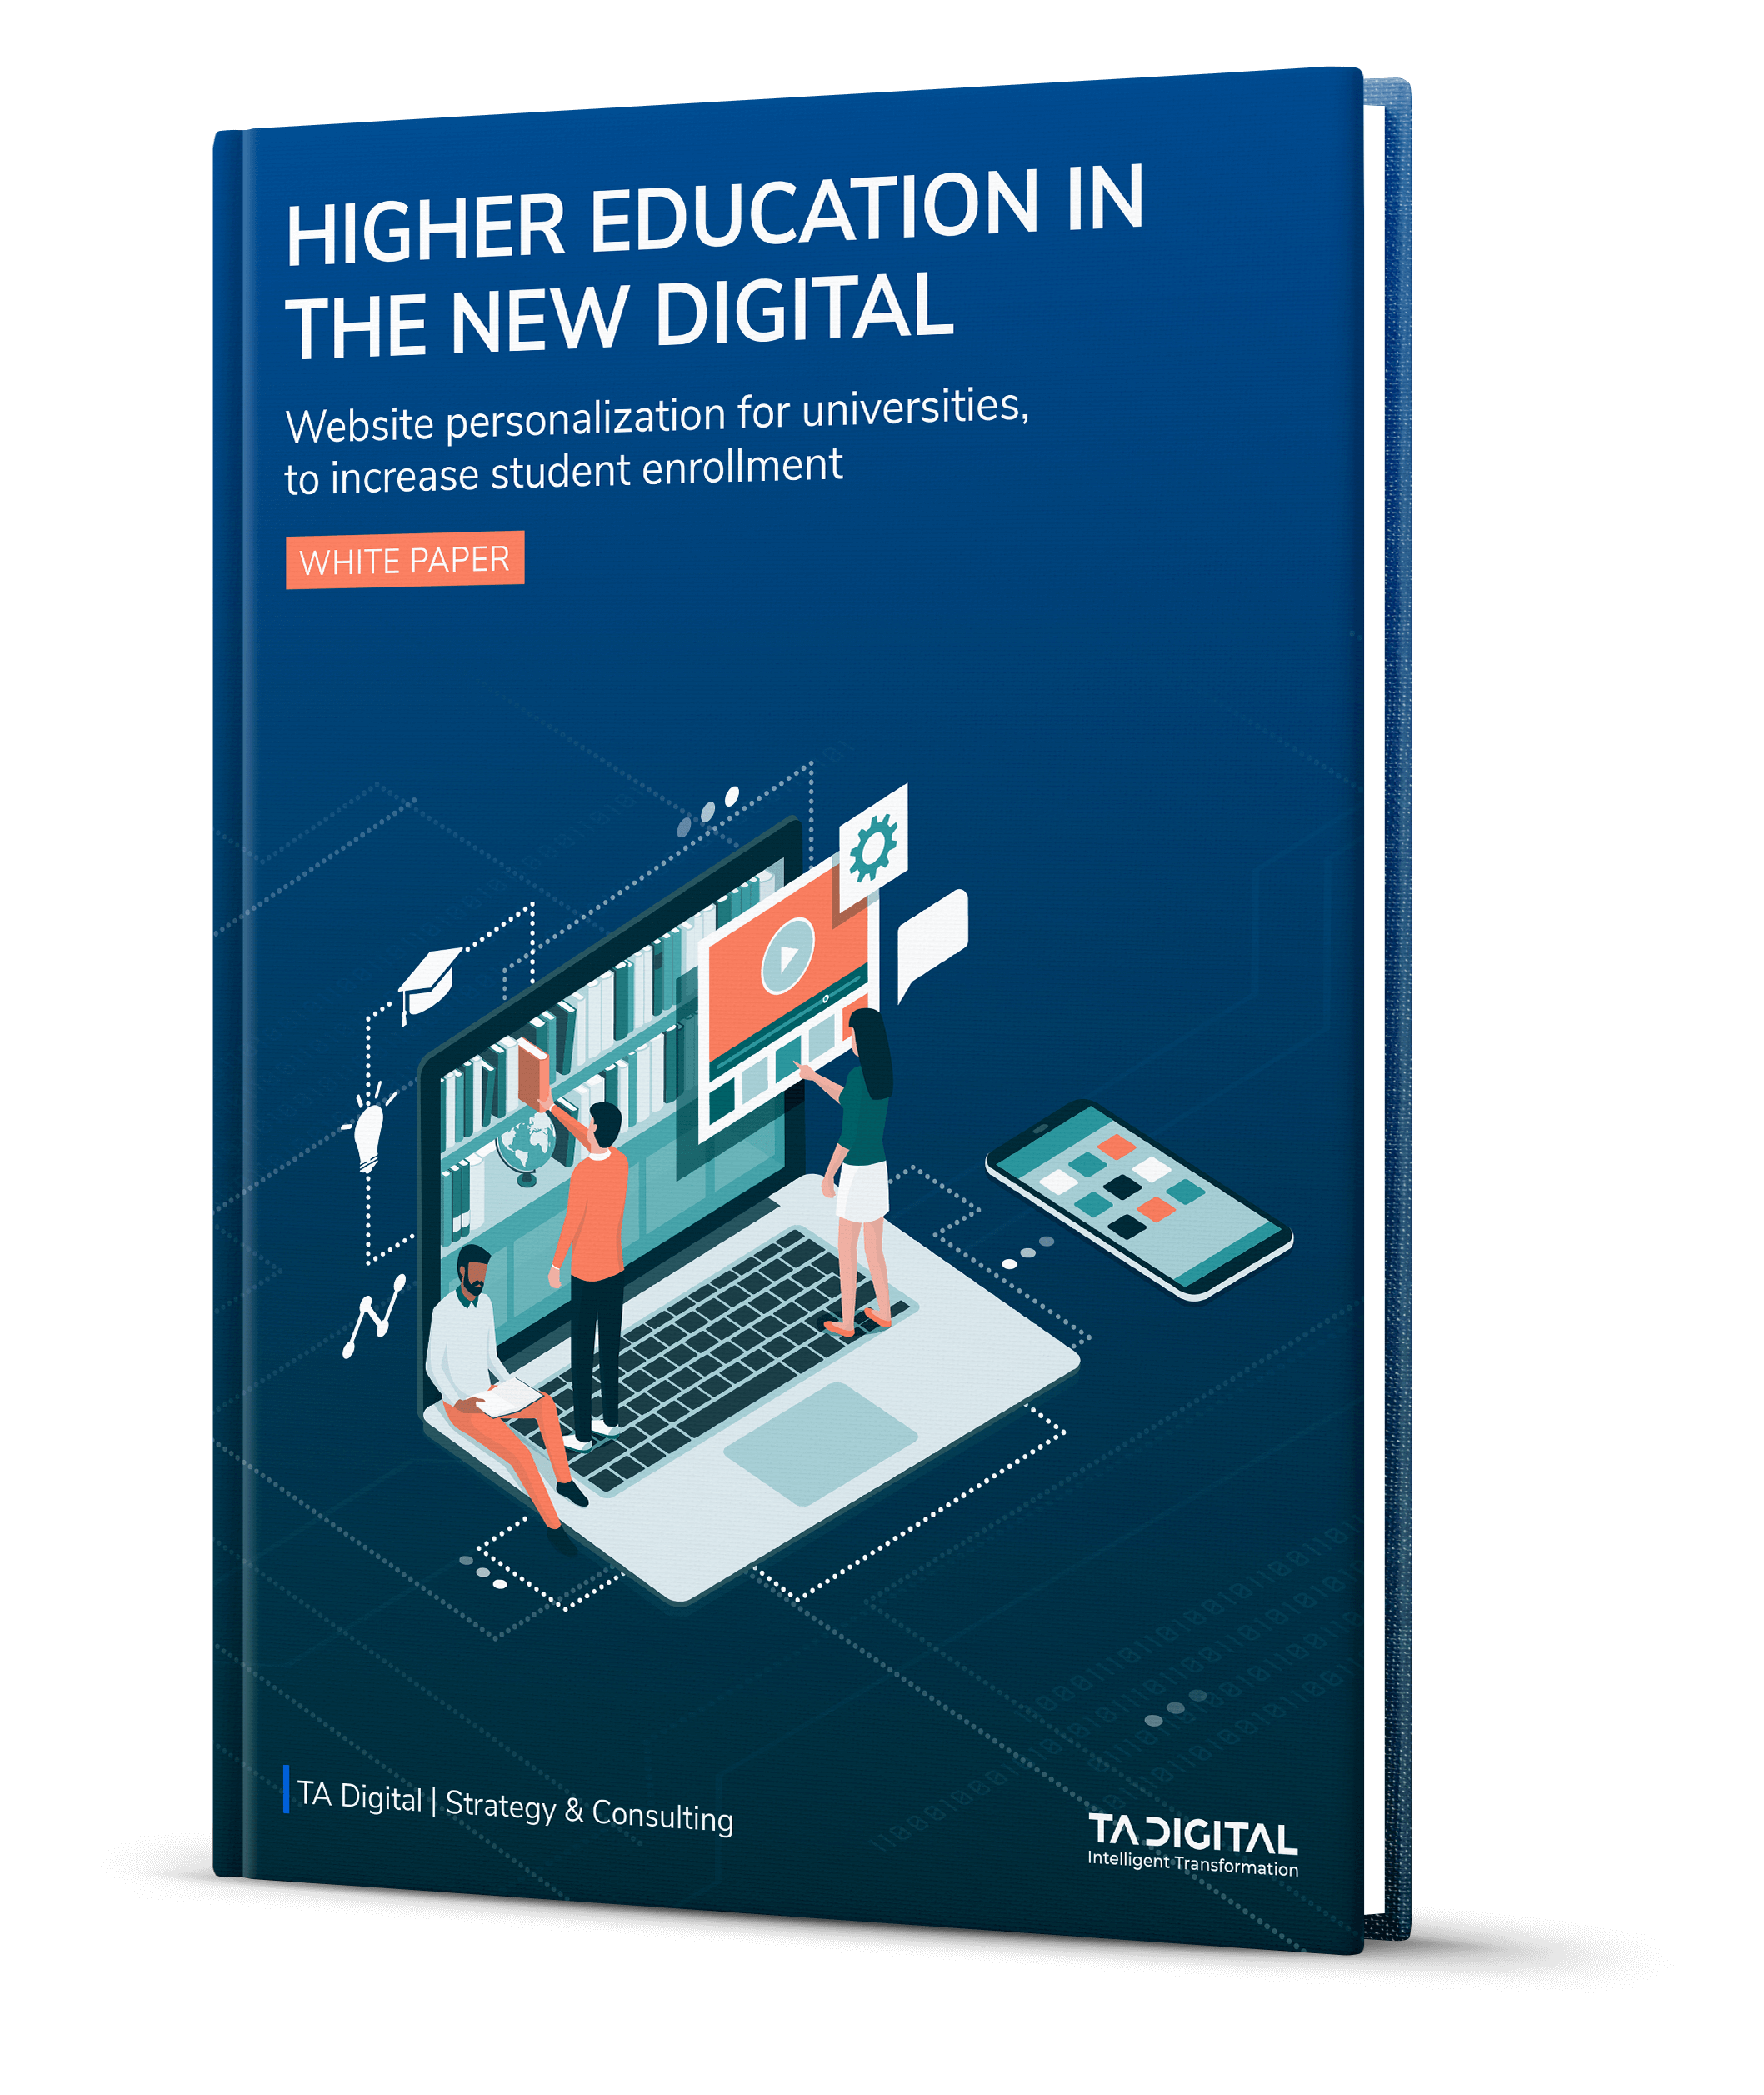 Higher Education in the New Digital